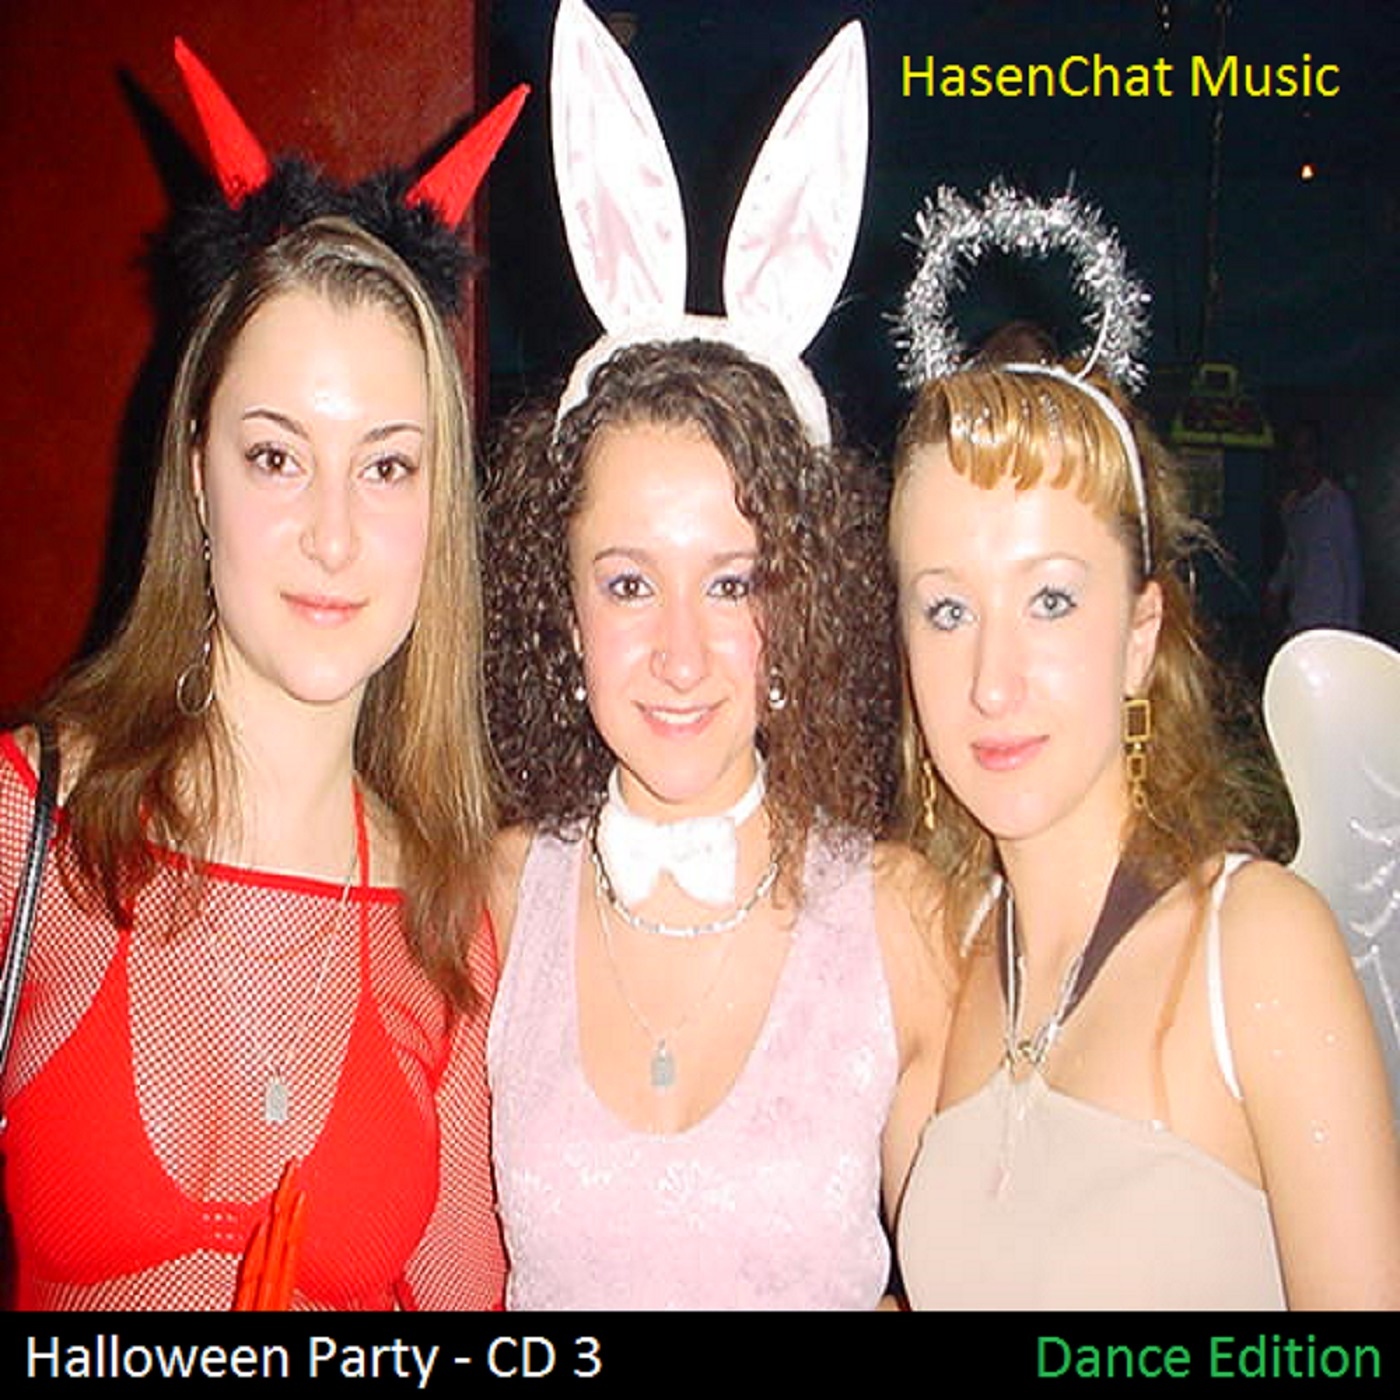 HasenChat Music - Halloween Party 1 - CD 3